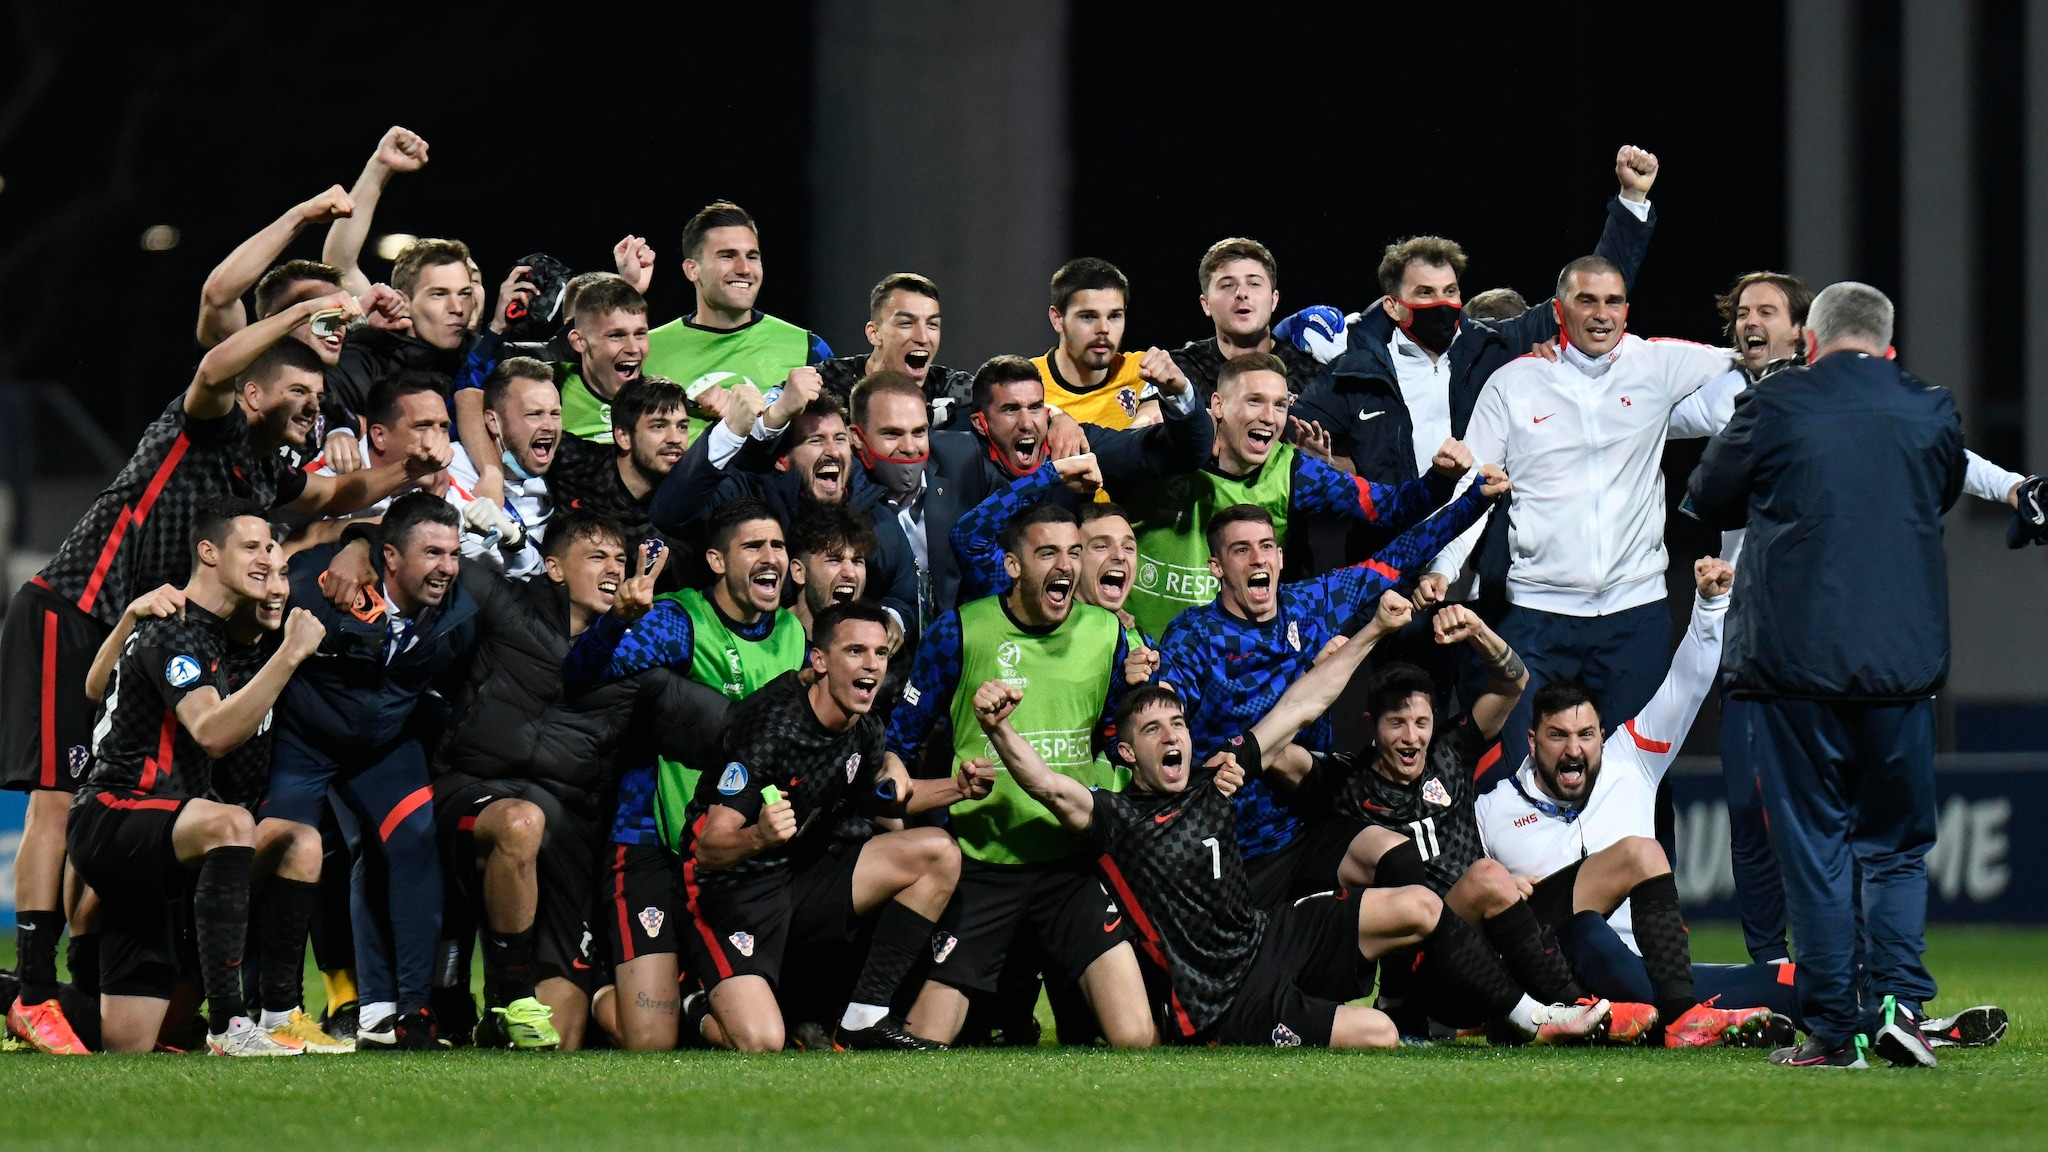 Under-21 EURO: Drama as group stage ends